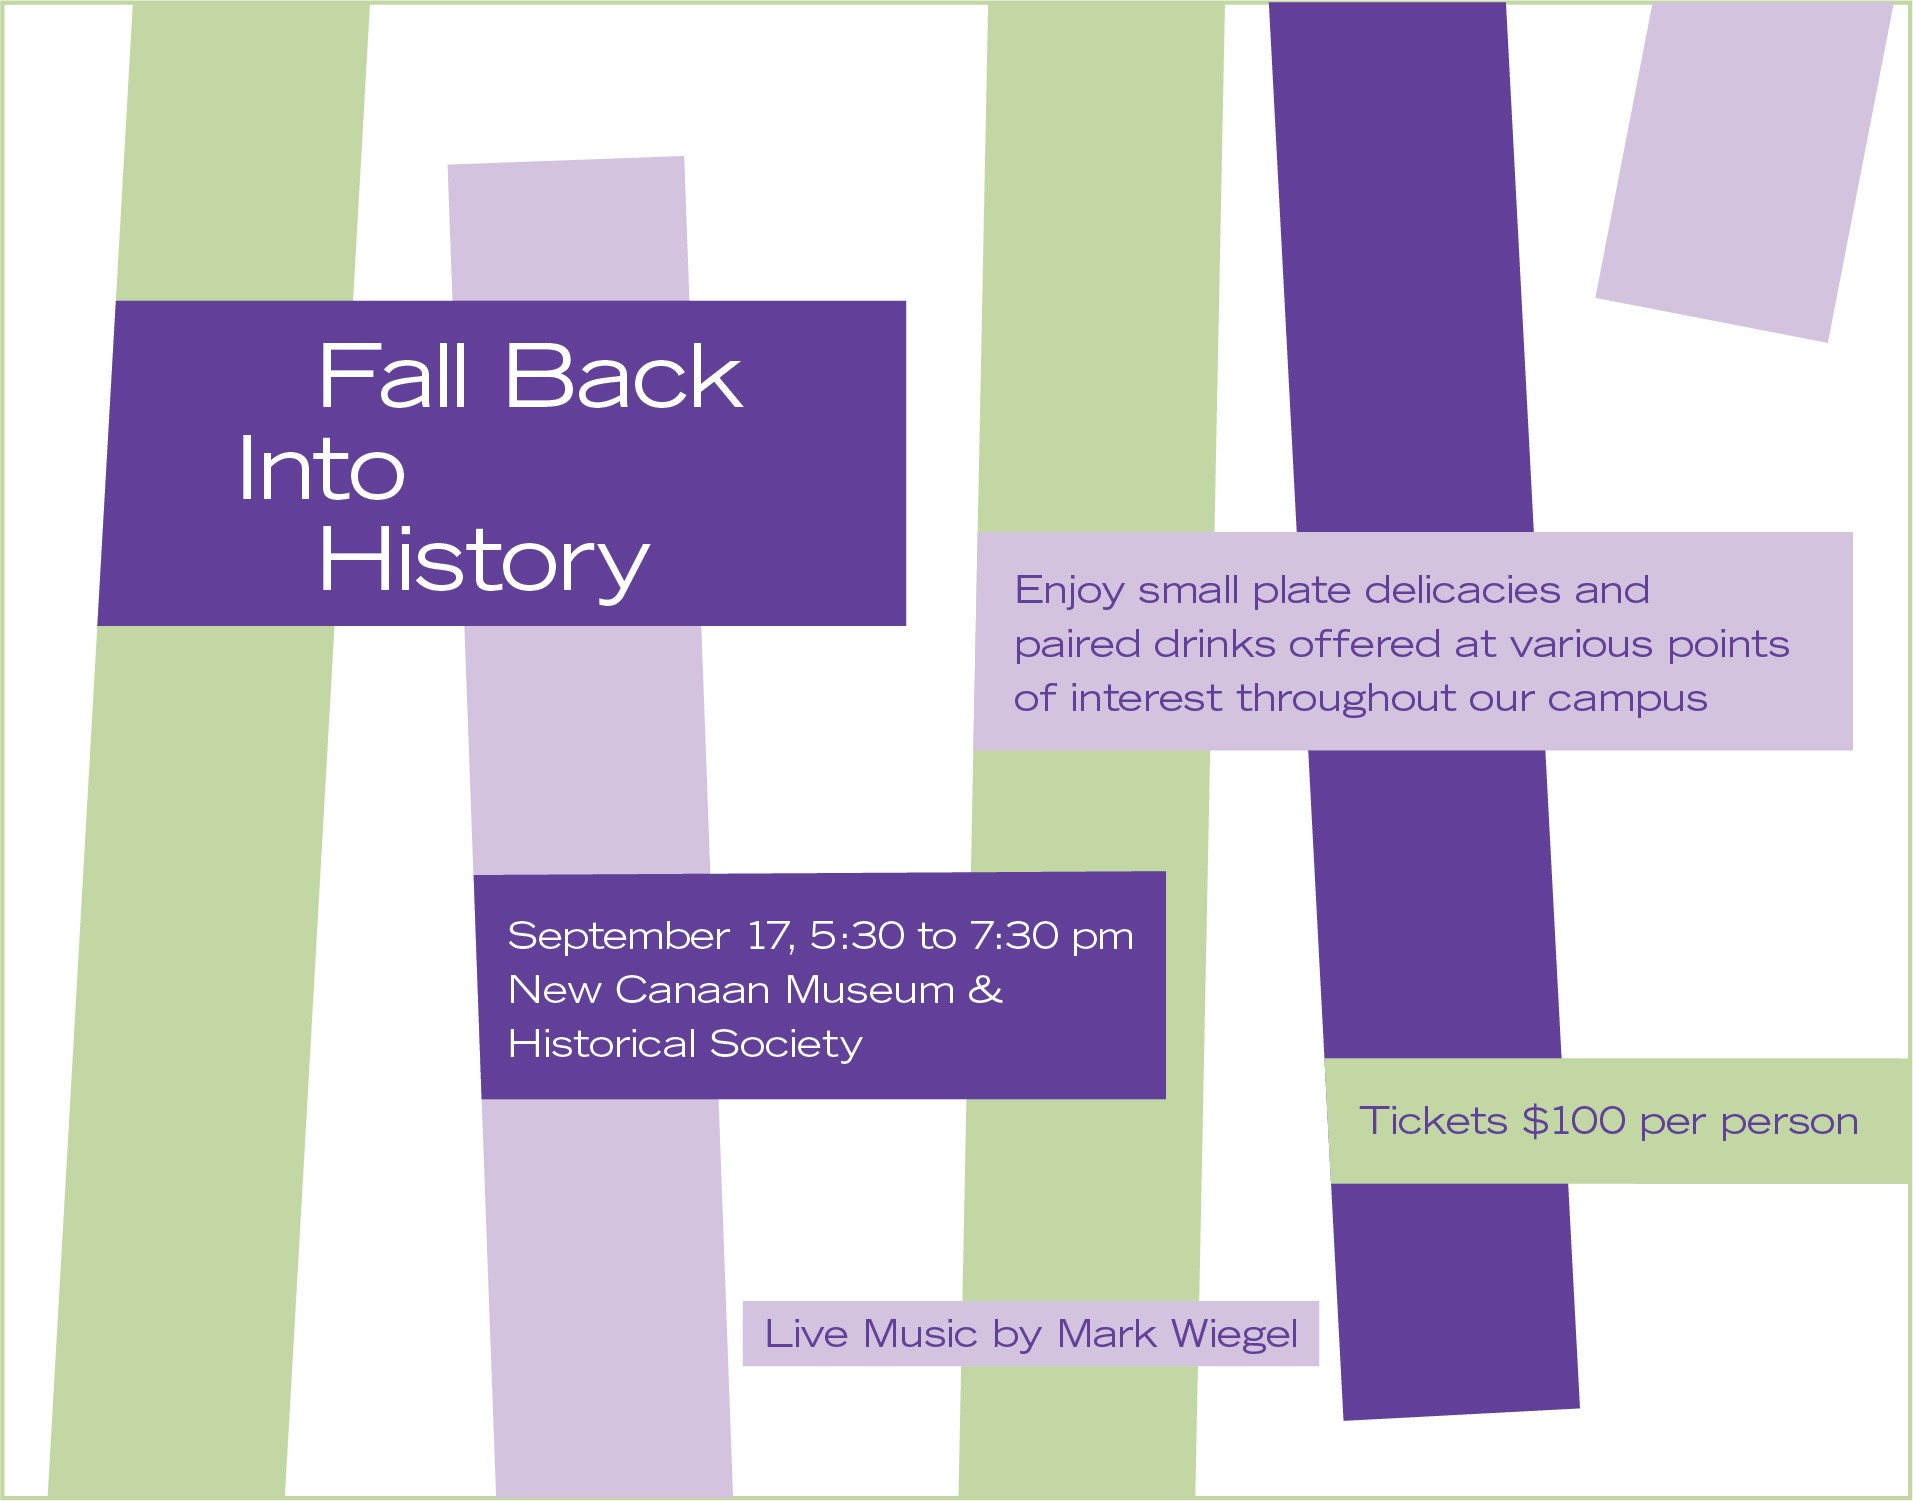 fall back into history invitation newsletter 3 1xlgFd.tmp